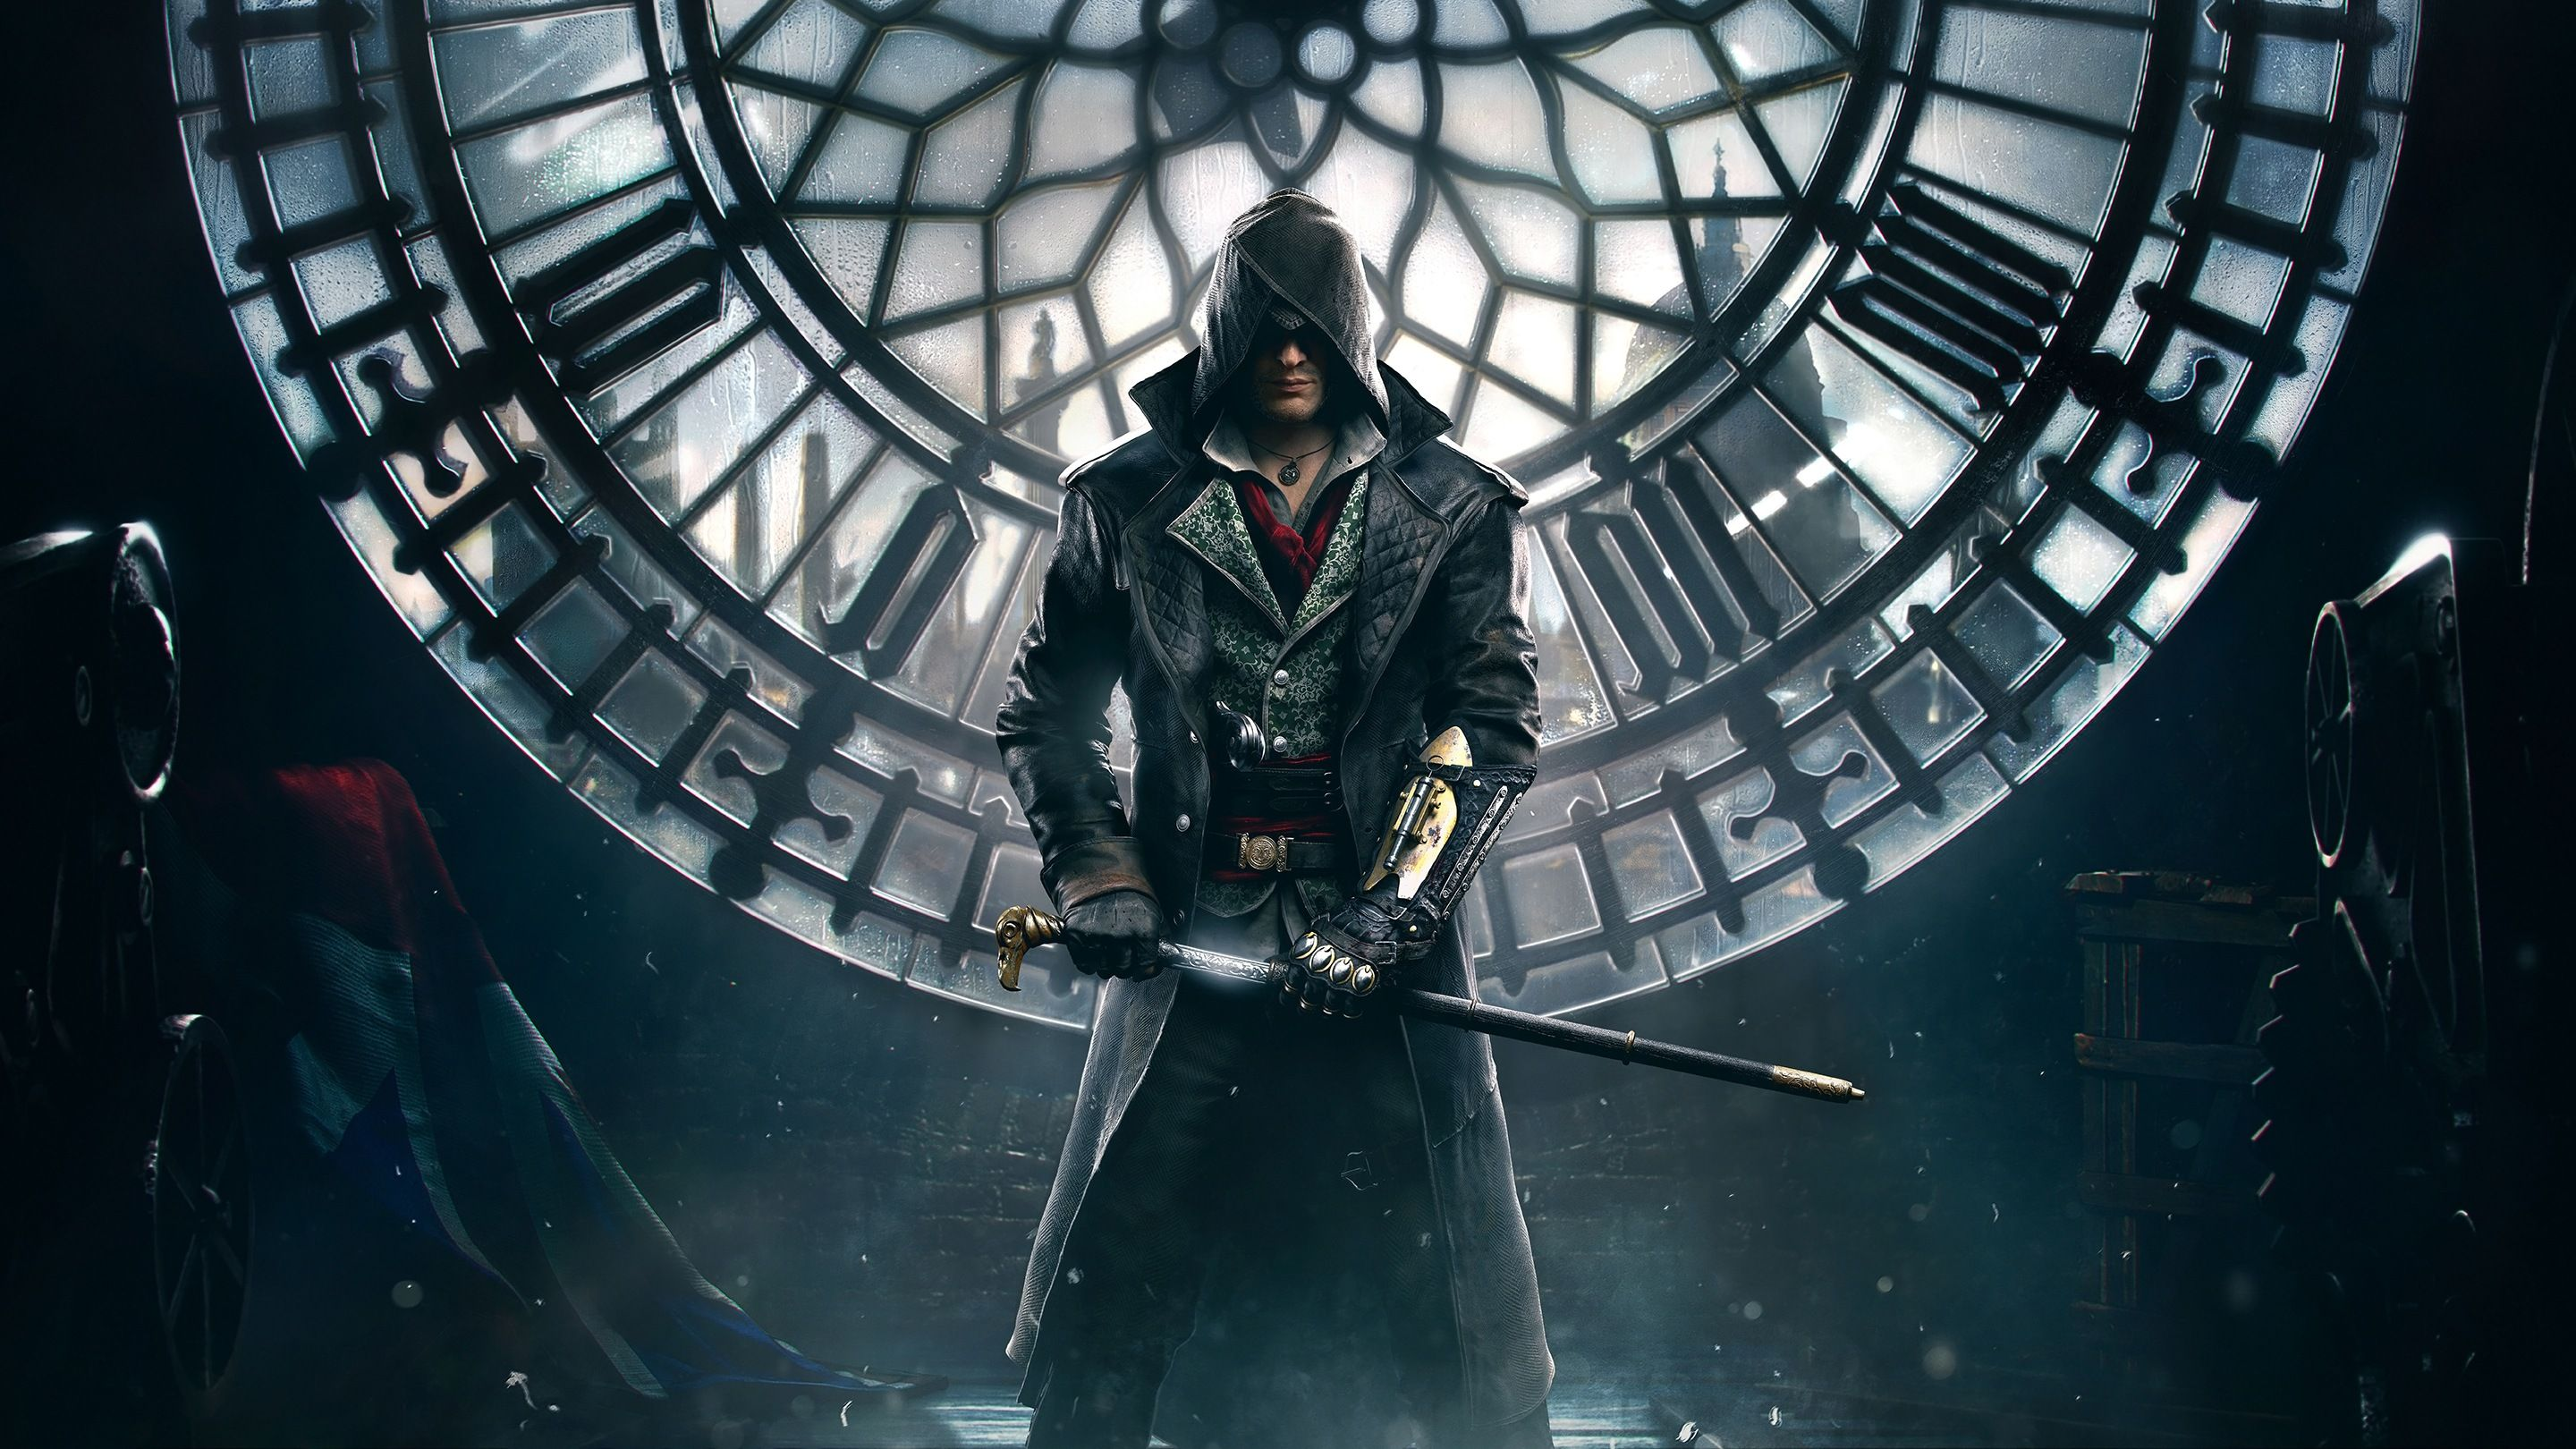 assassins creed syndicate wallpaper jacob frye high res 2880x1620